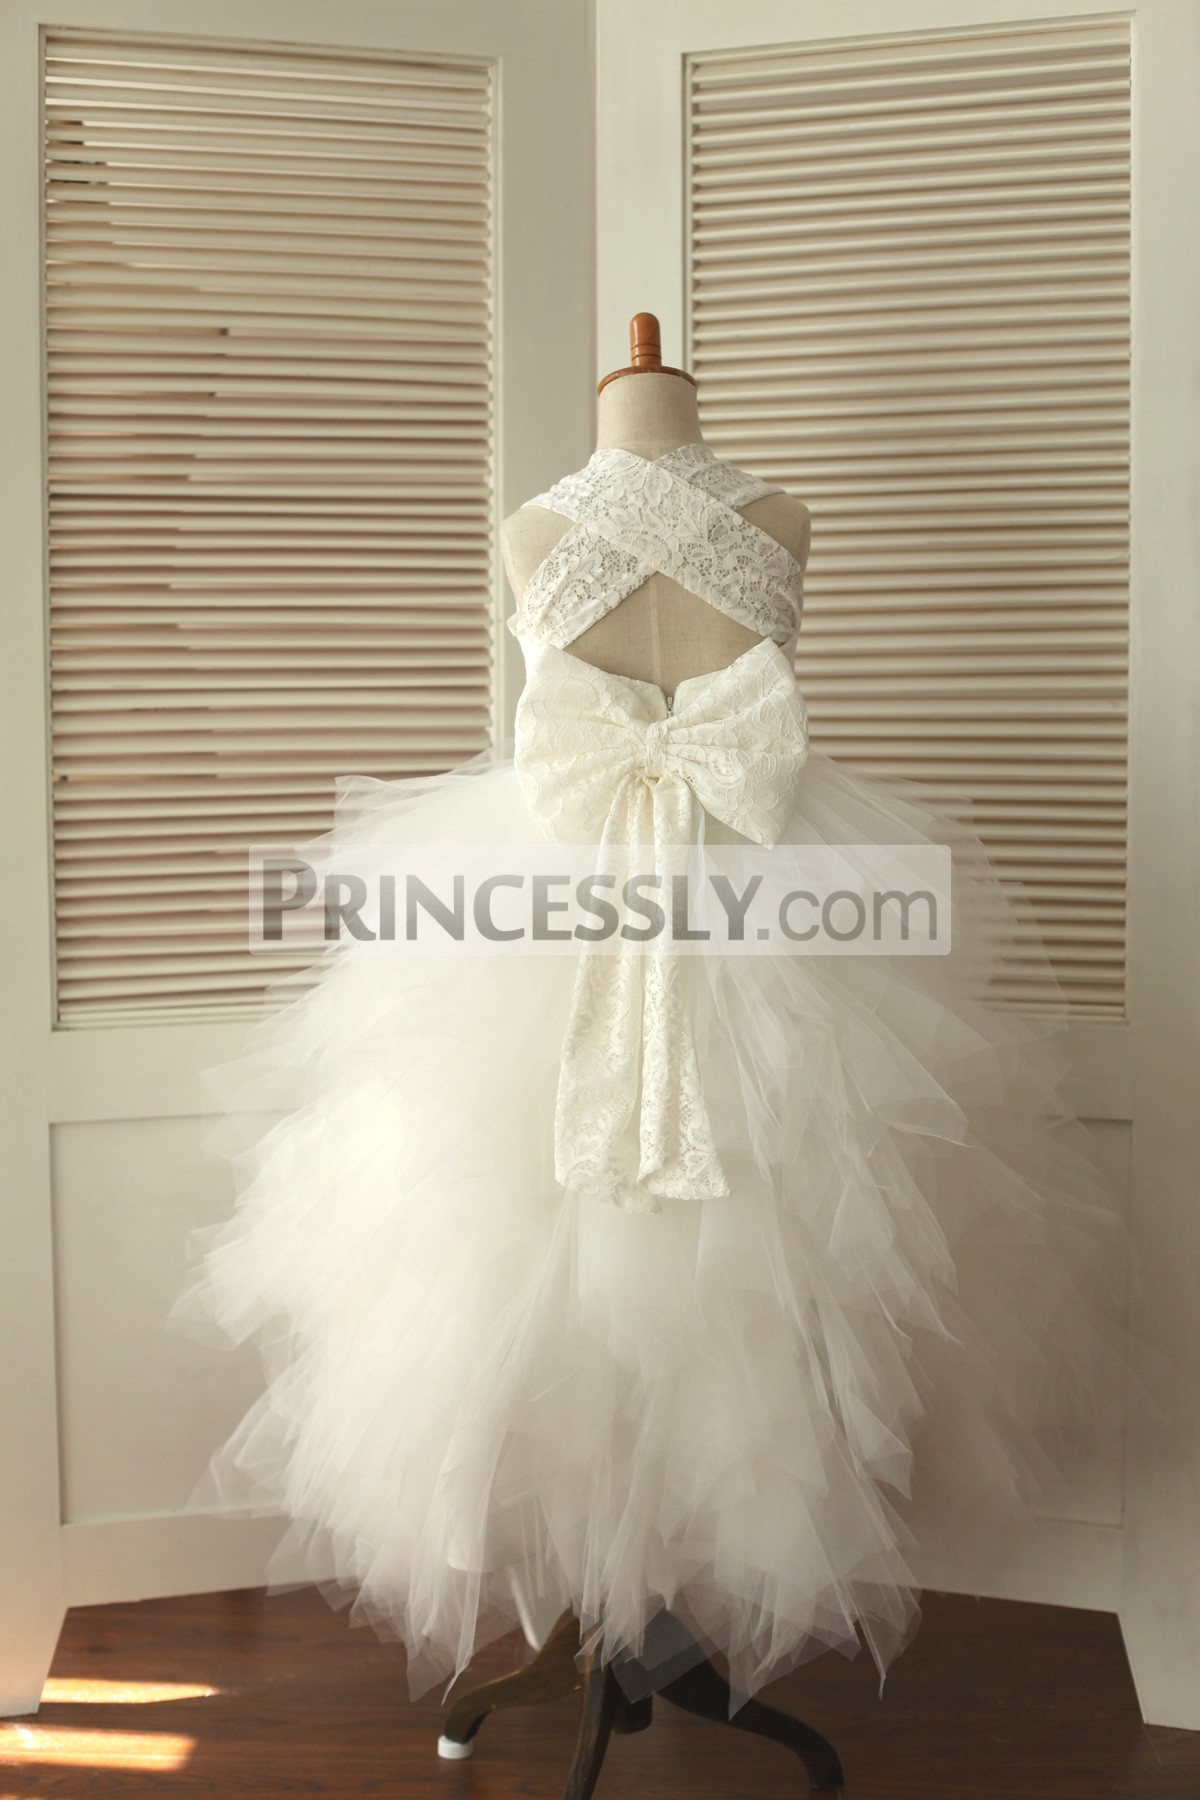 Find the best selection of cheap girls tulle skirt in bulk here at ditilink.gq Including long ruffle tulle skirts and tulle skirts for baby girls at wholesale prices from girls tulle skirt manufacturers. Source discount and high quality products in hundreds of categories wholesale direct from China.